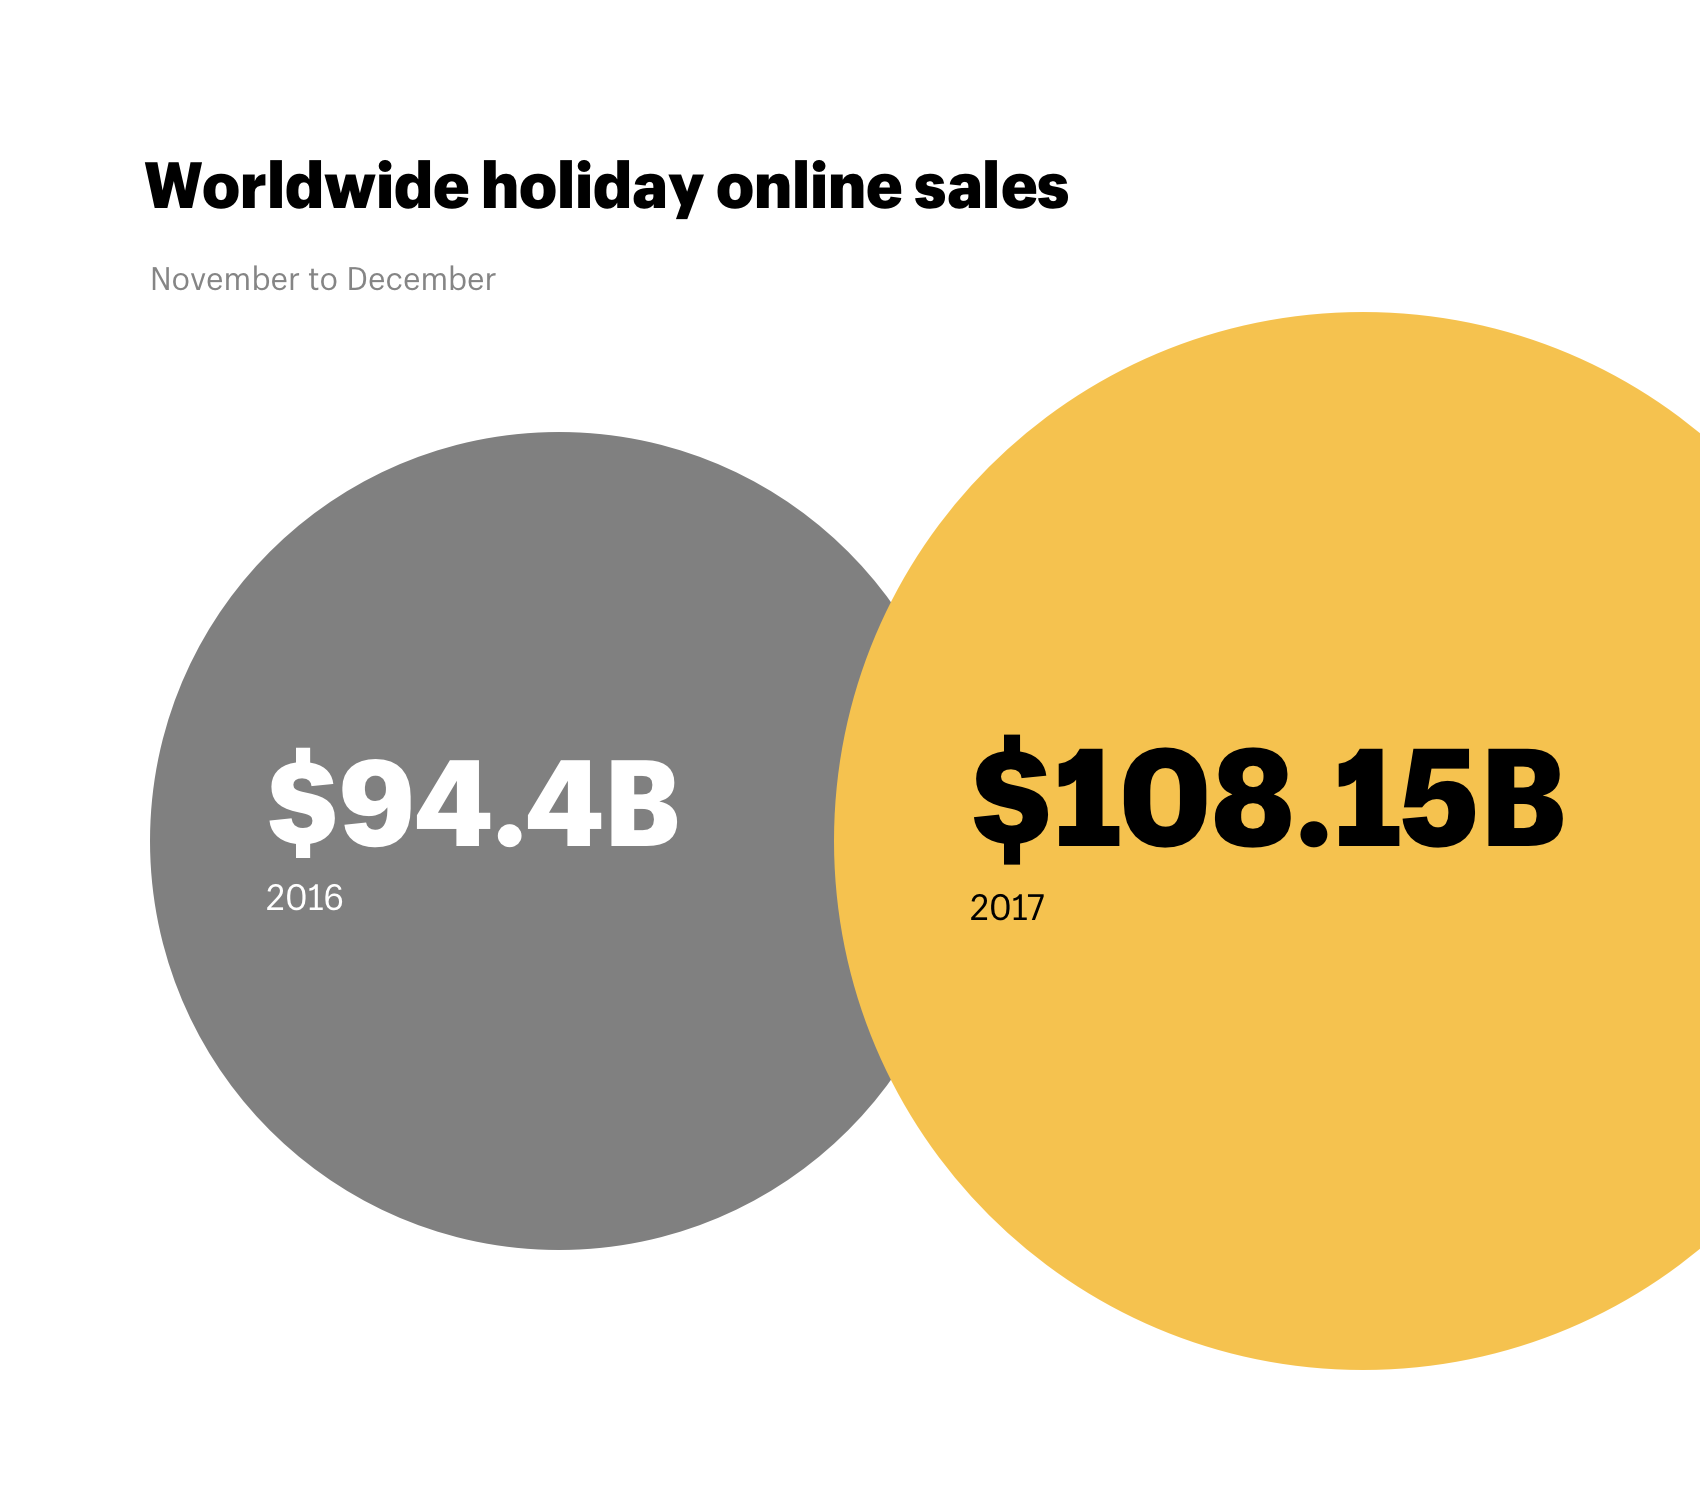 Worldwide holiday shopping online 2017 vs 2016